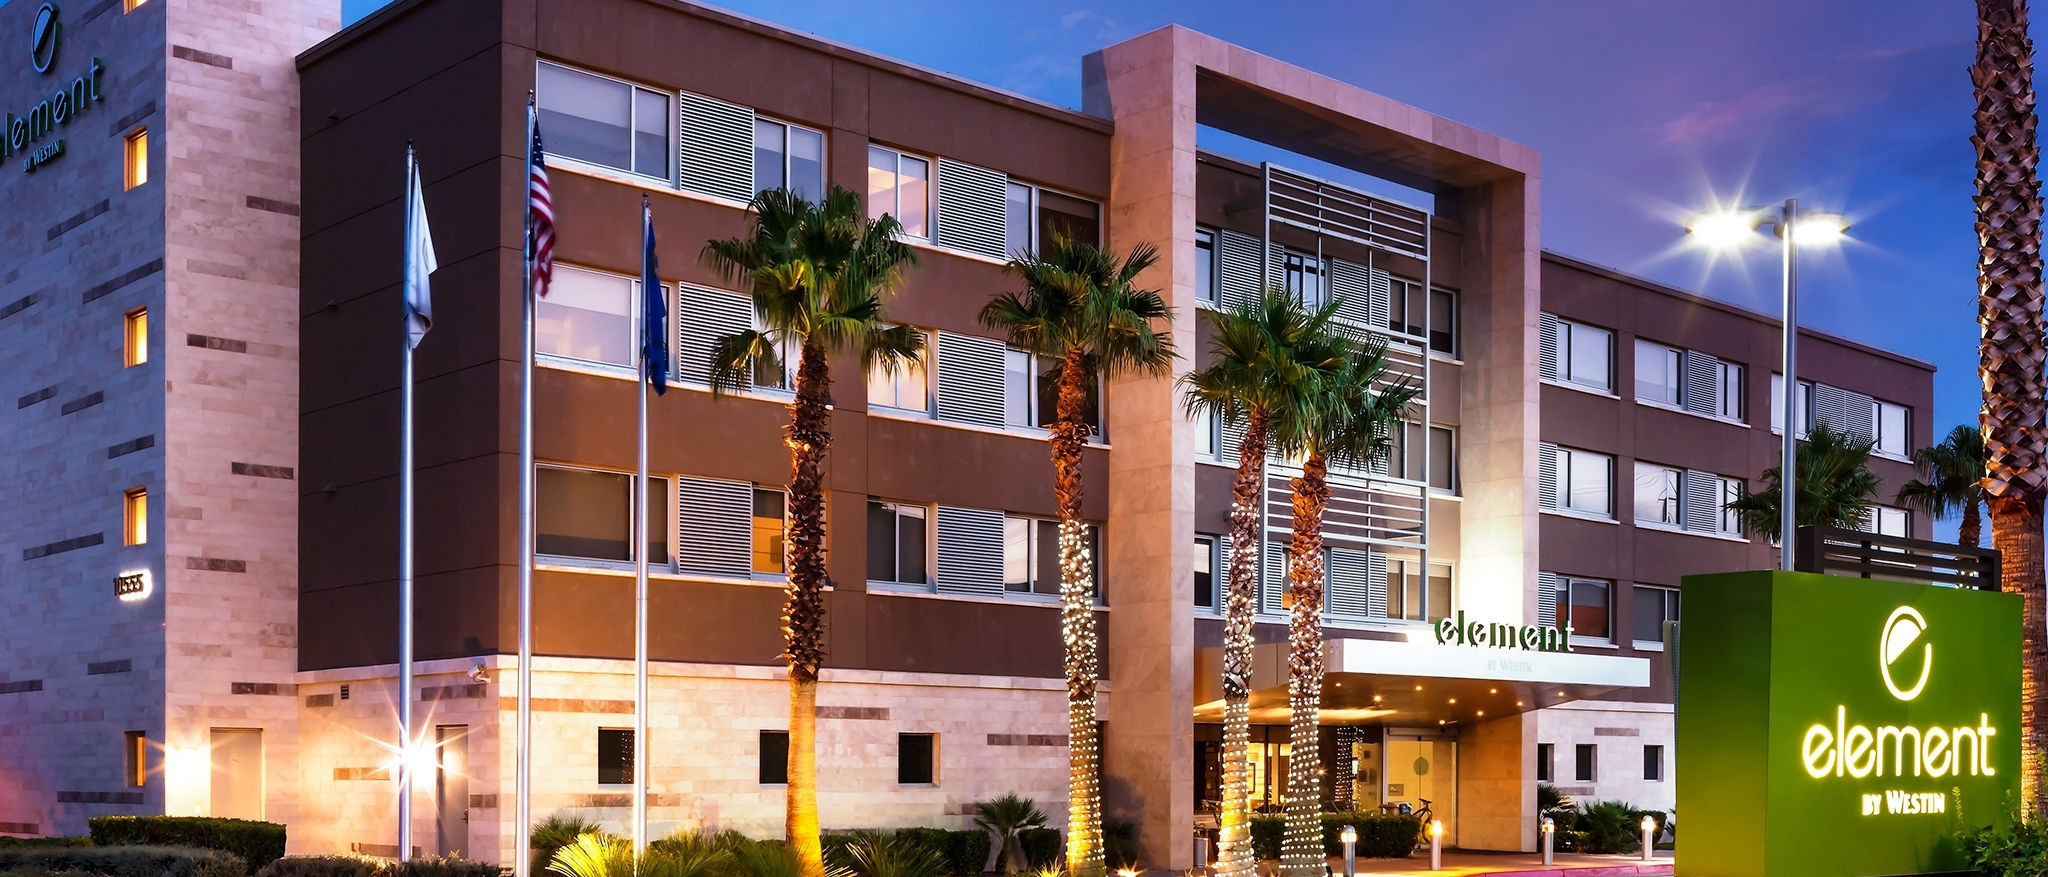 Element Las Vegas Summerlin - Hotel Exterior